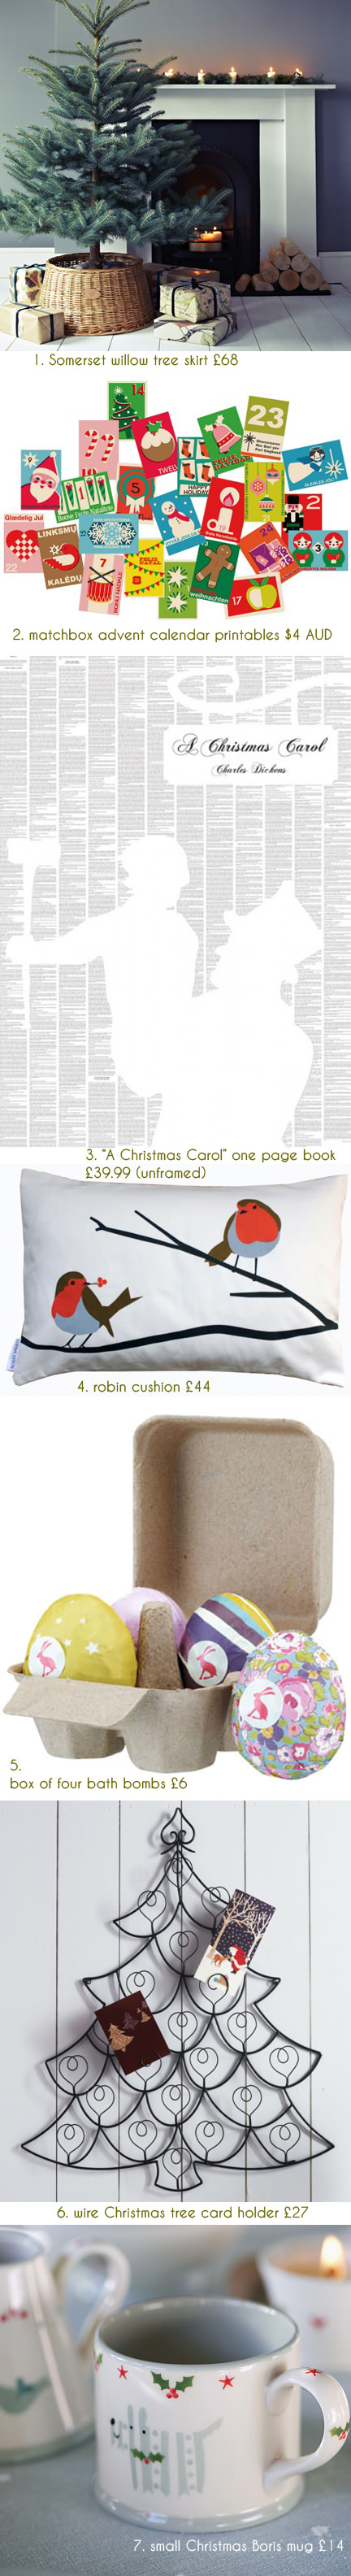 selection of festive Christmas items for sale by various independent retailers & makers